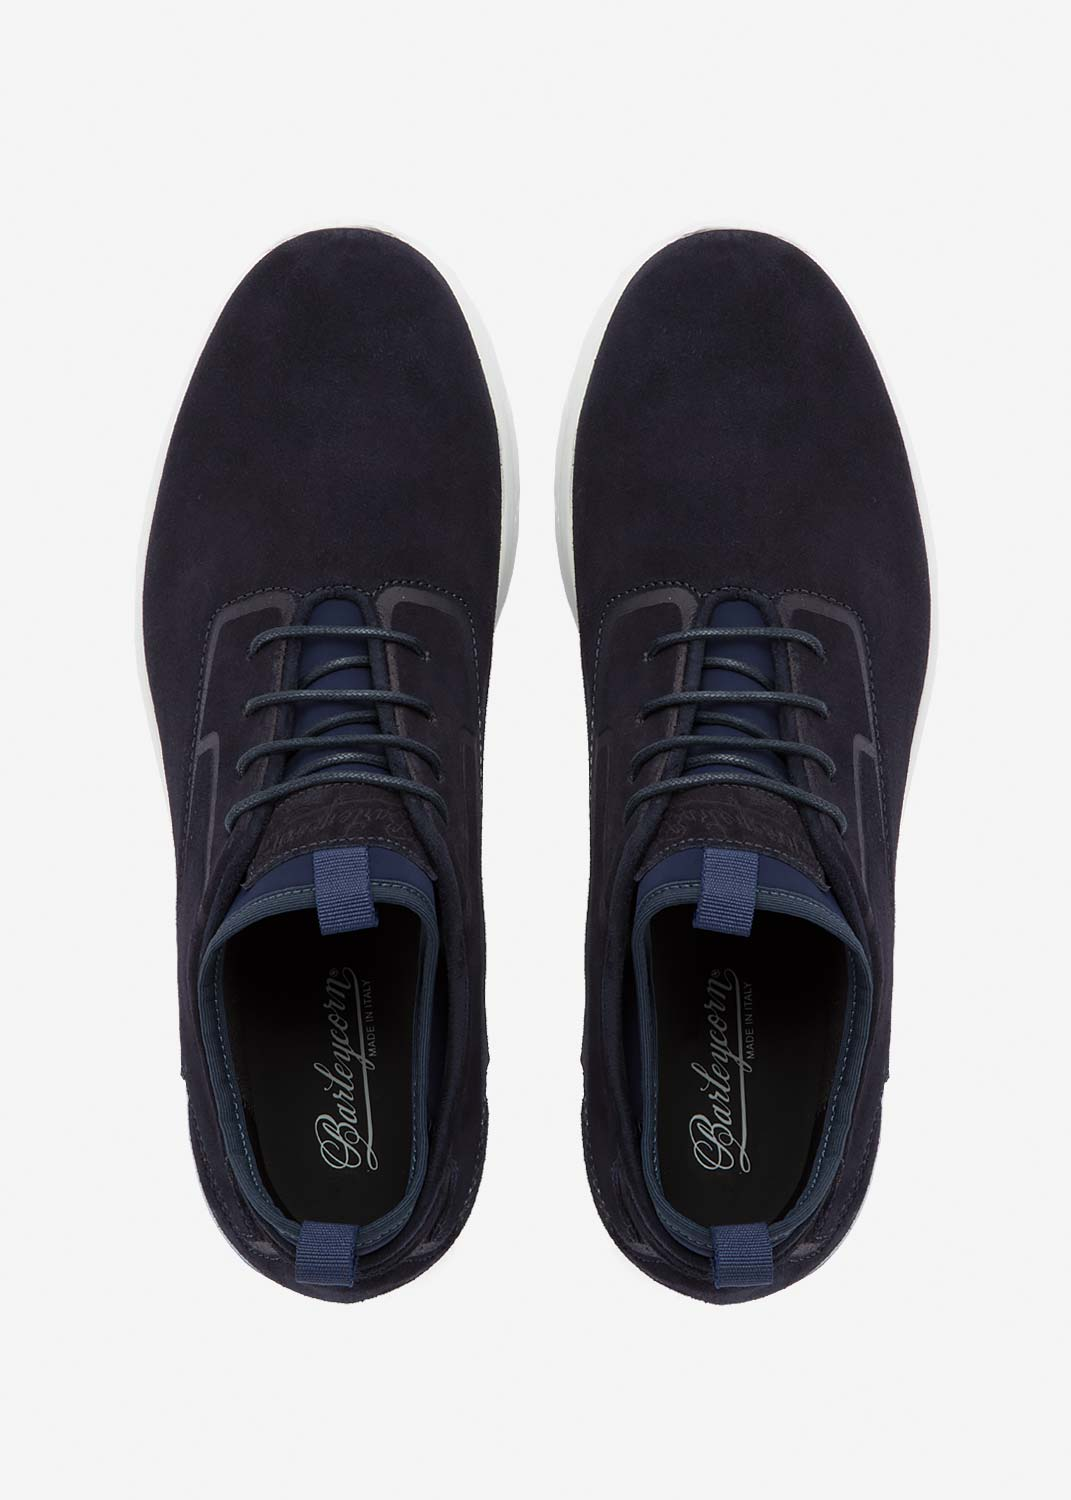 Air Grecale Blue Suede